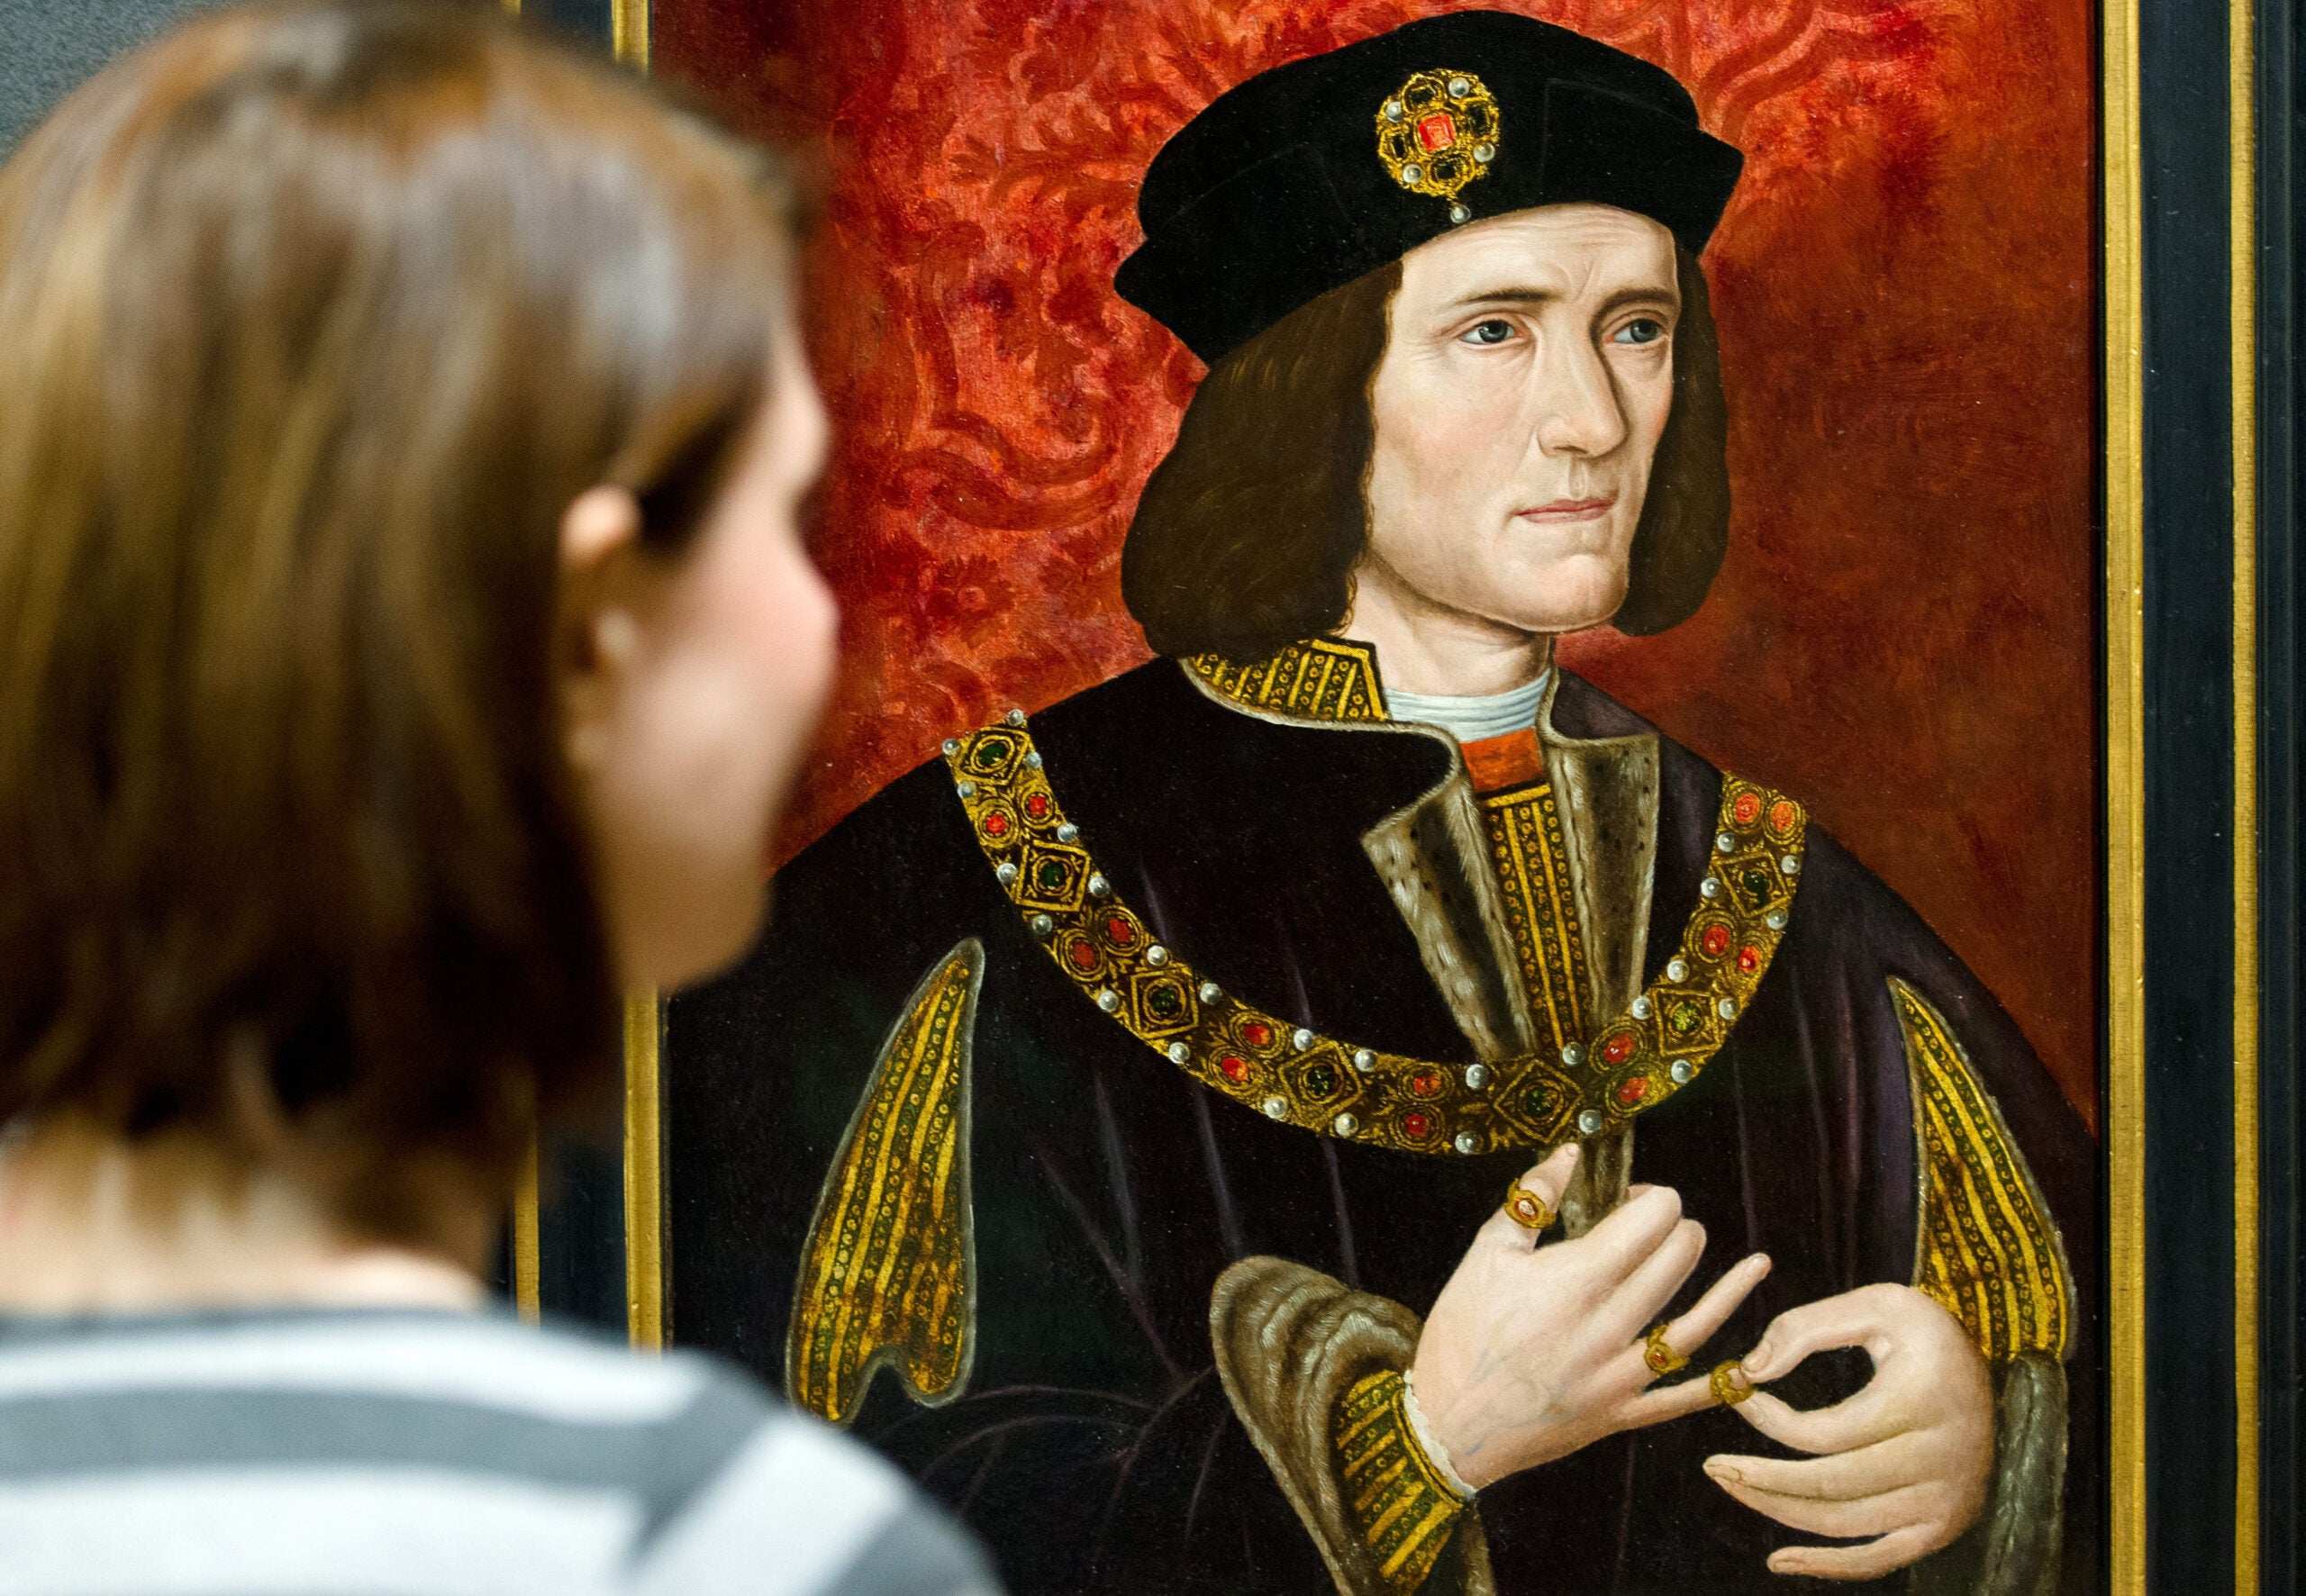 Does it matter if Richard III's DNA suggests infidelity in the royal family?